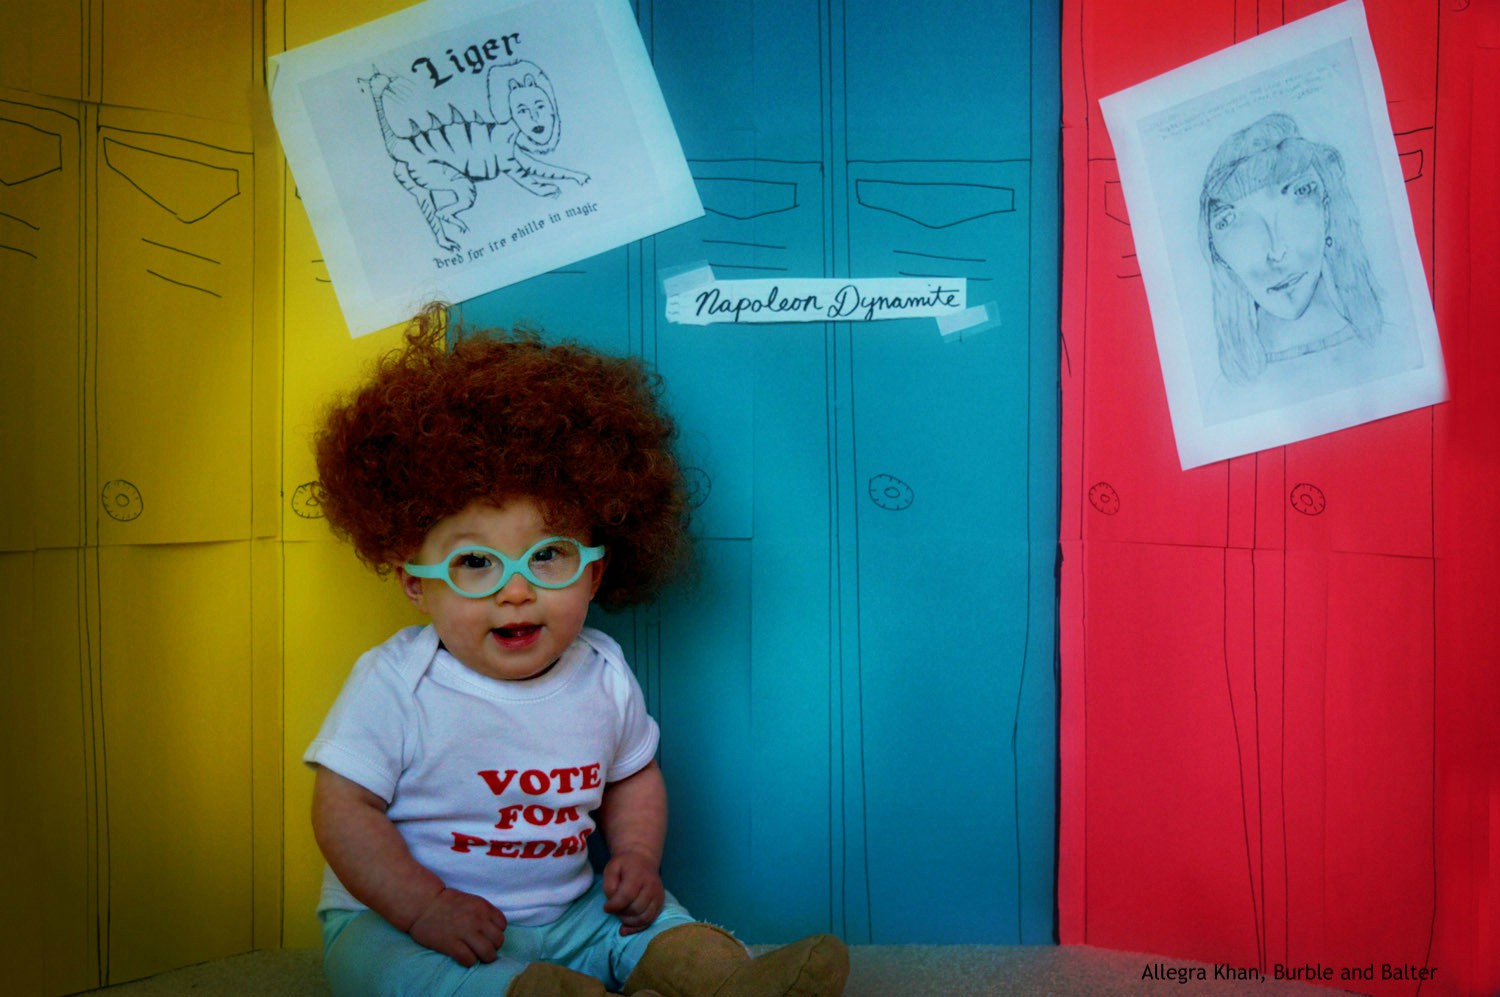 Napoleon-Dynamite-3-Baby-Photoshoot-Costume-Burble-and-Balter.jpg